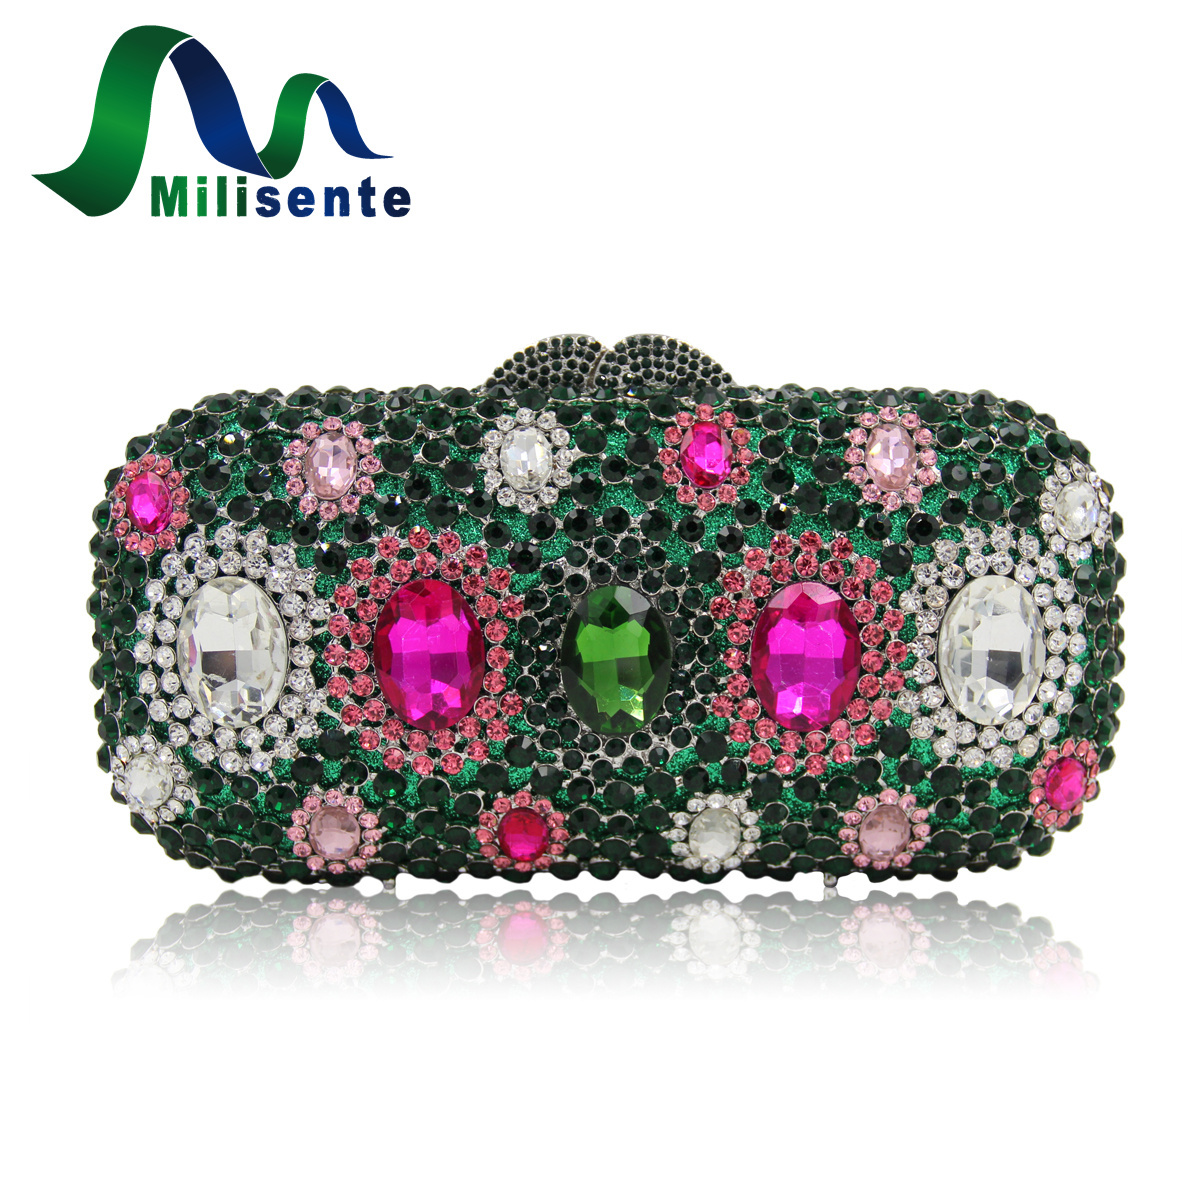 Milisente High Quality Women Evening Bag Female Handmade Crystal Party Bags Ladies New Designer Wedding Clutches Purse потолочная подвесная люстра коллекция champa 879067 хром черный lightstar лайтстар